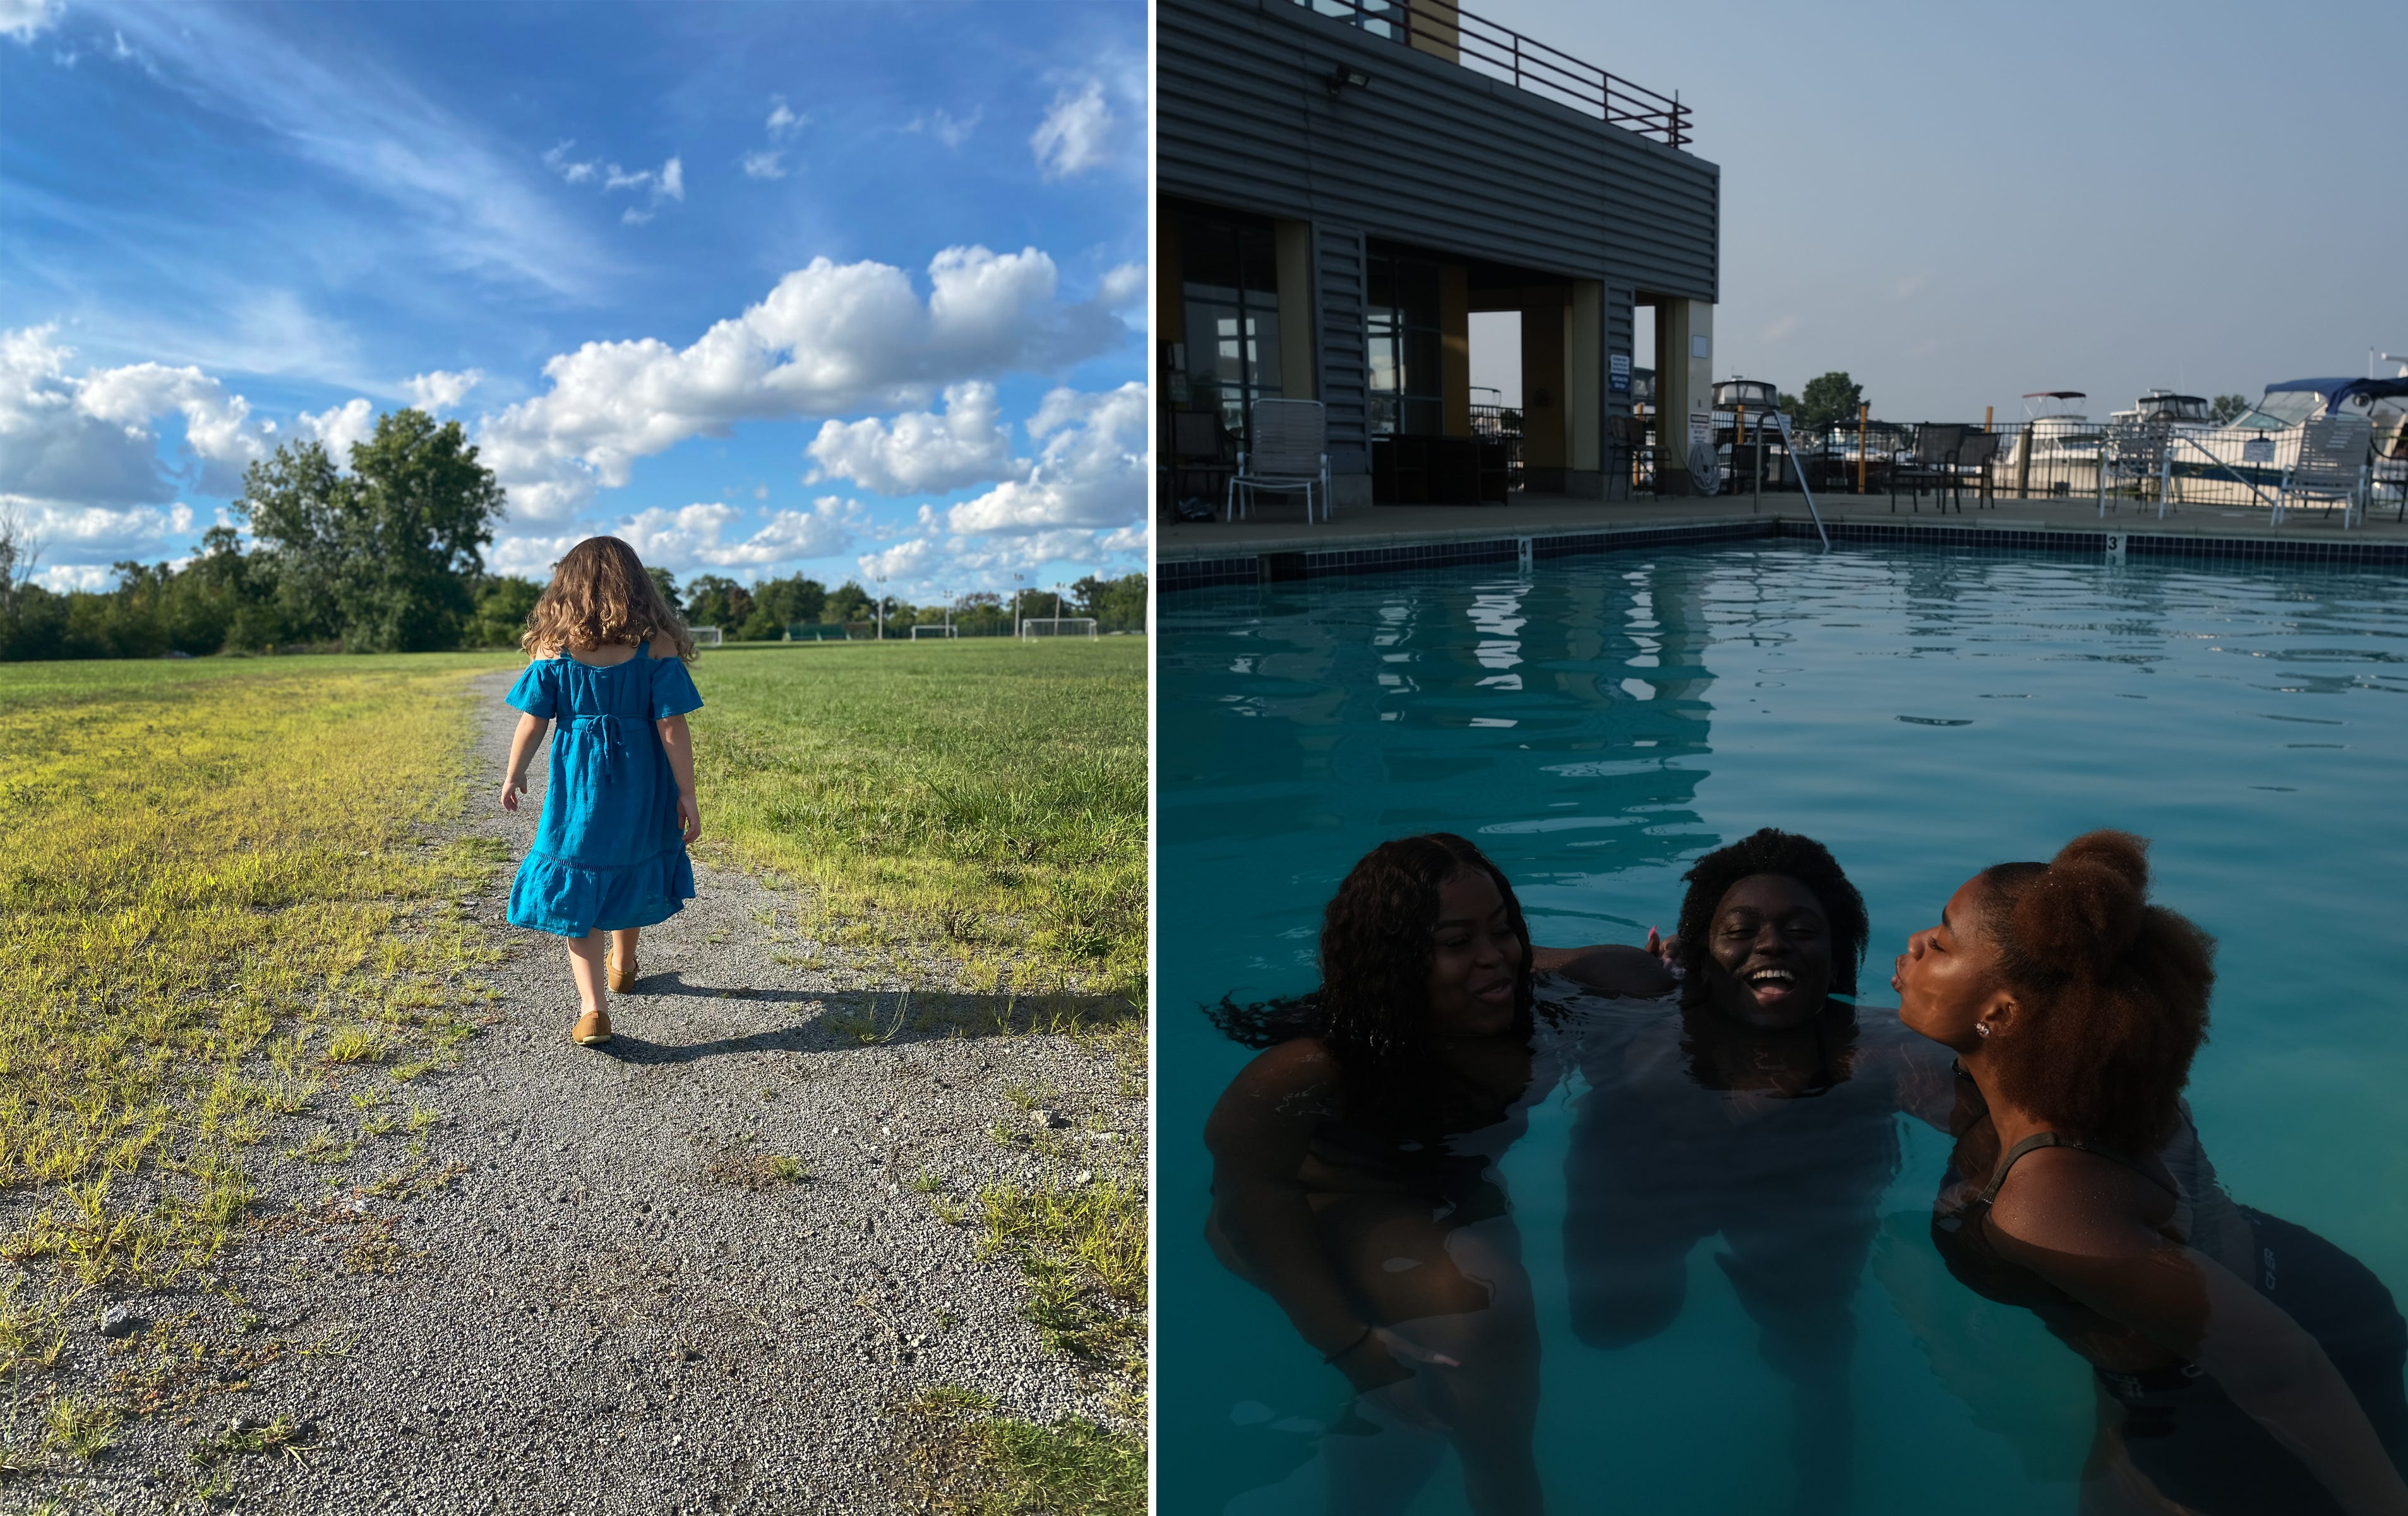 Left: Isadora Hernandez, 3, walks on Belle Isle in Detroit during  an afternoon outing with her family on Saturday August 29, 2020.  Right: (From left) Sarah Wheat,16,  Alexis Harris, 17 and Madison Beatty, 17, enjoy a fun day at the pool at Riverside Marina in Detroit before going back to school.